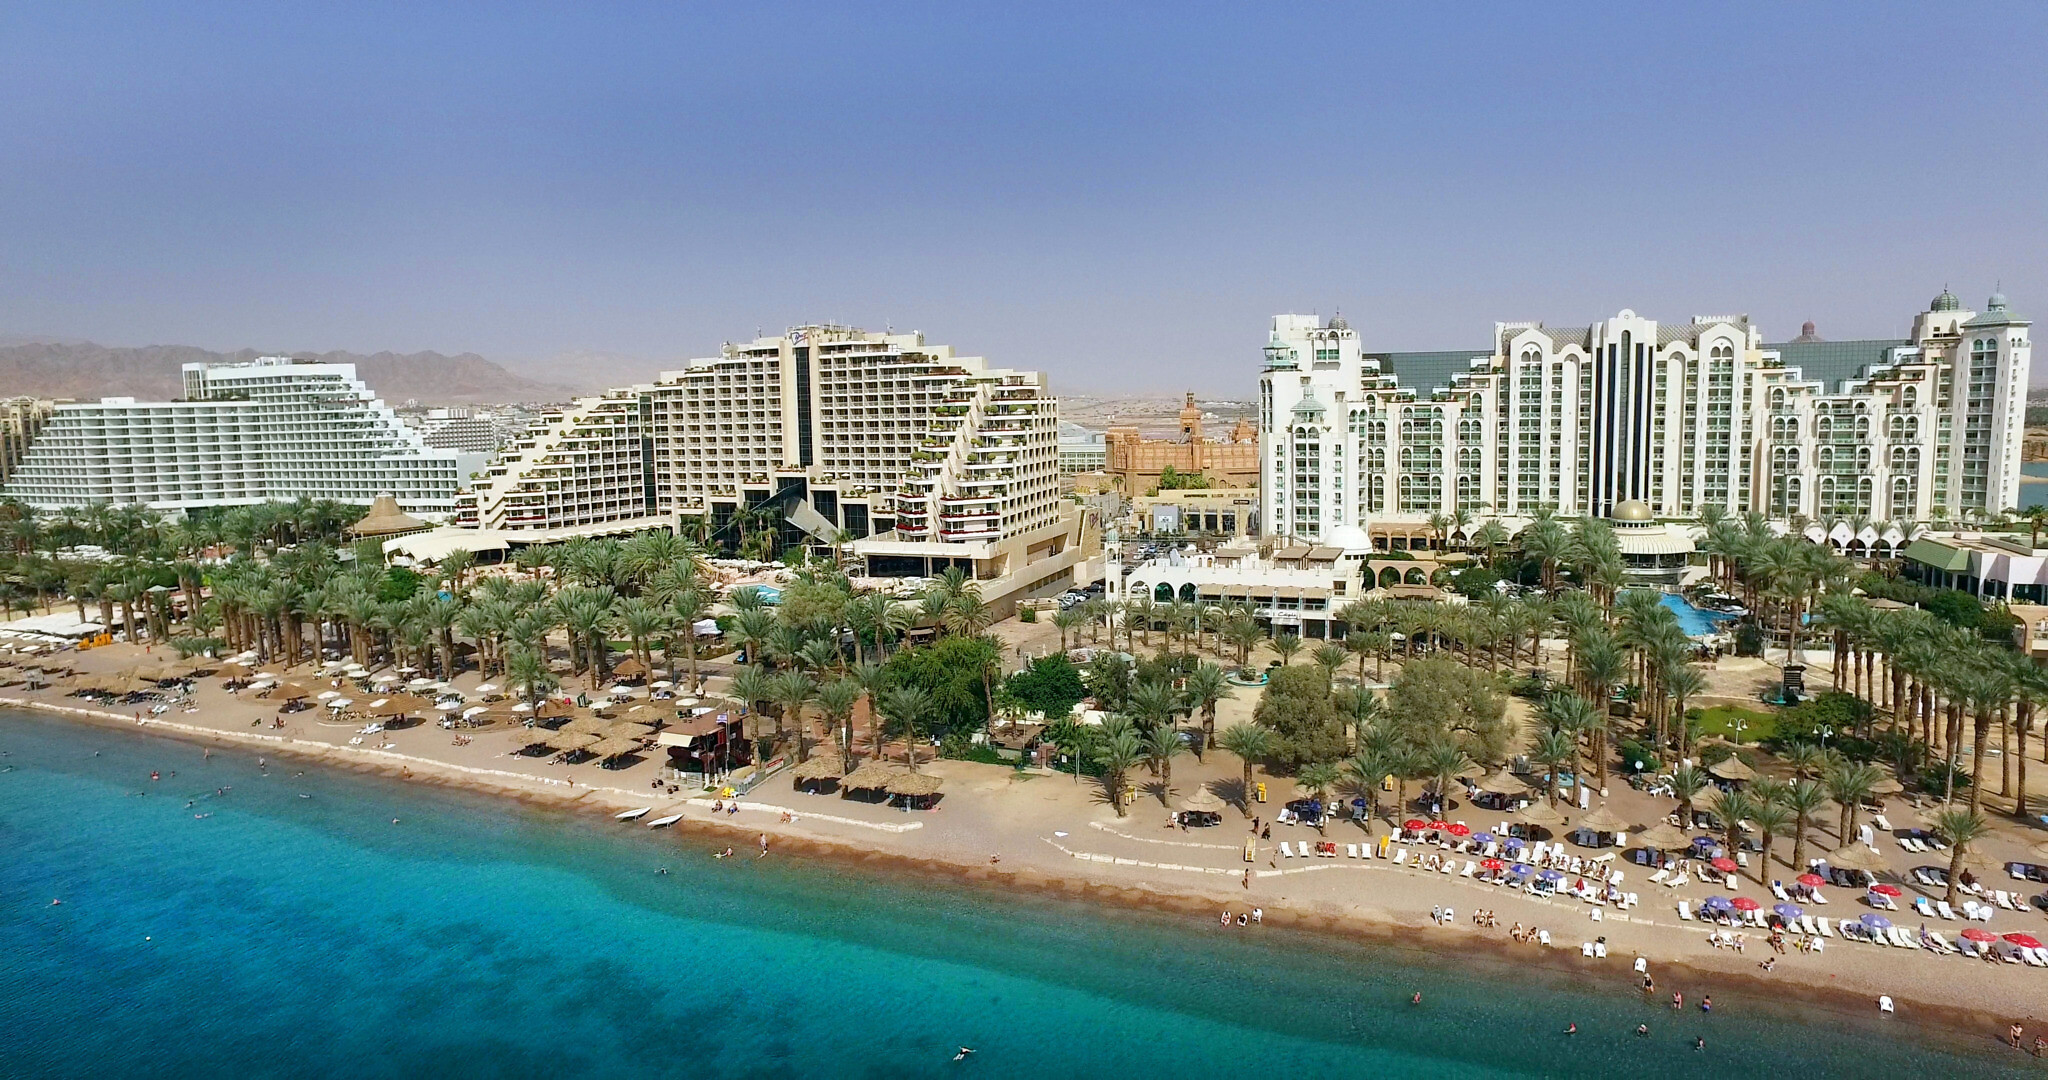 Police investigate alleged gang rape of girl, 16, by more than 30 men in Eilat